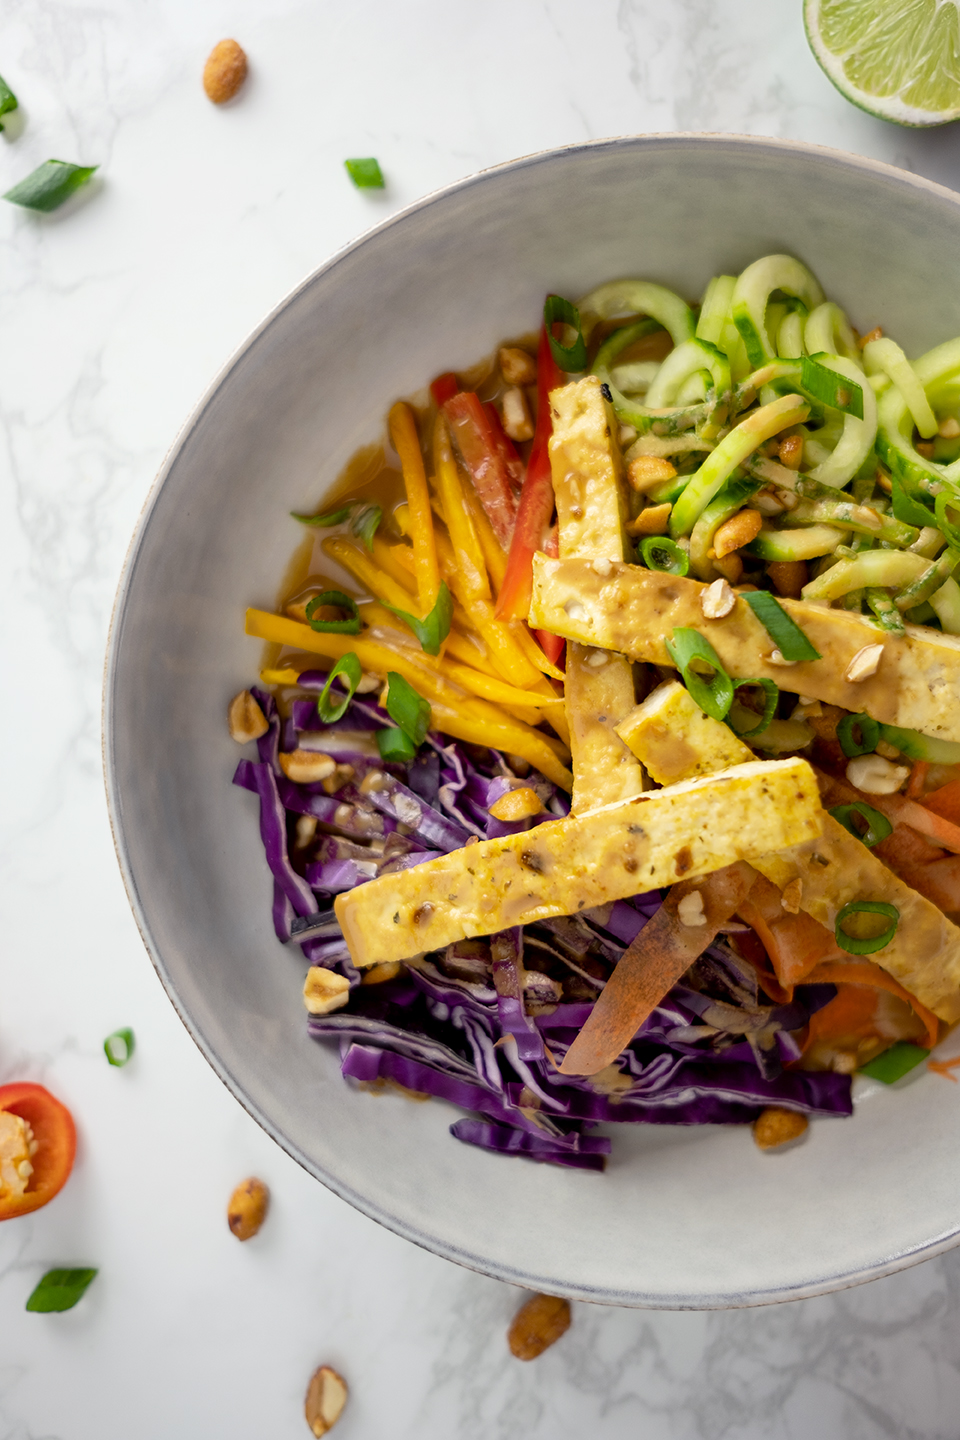 Thai vegetarian salad with sunbutter dressing and tofu in a gray ceramic bowl.